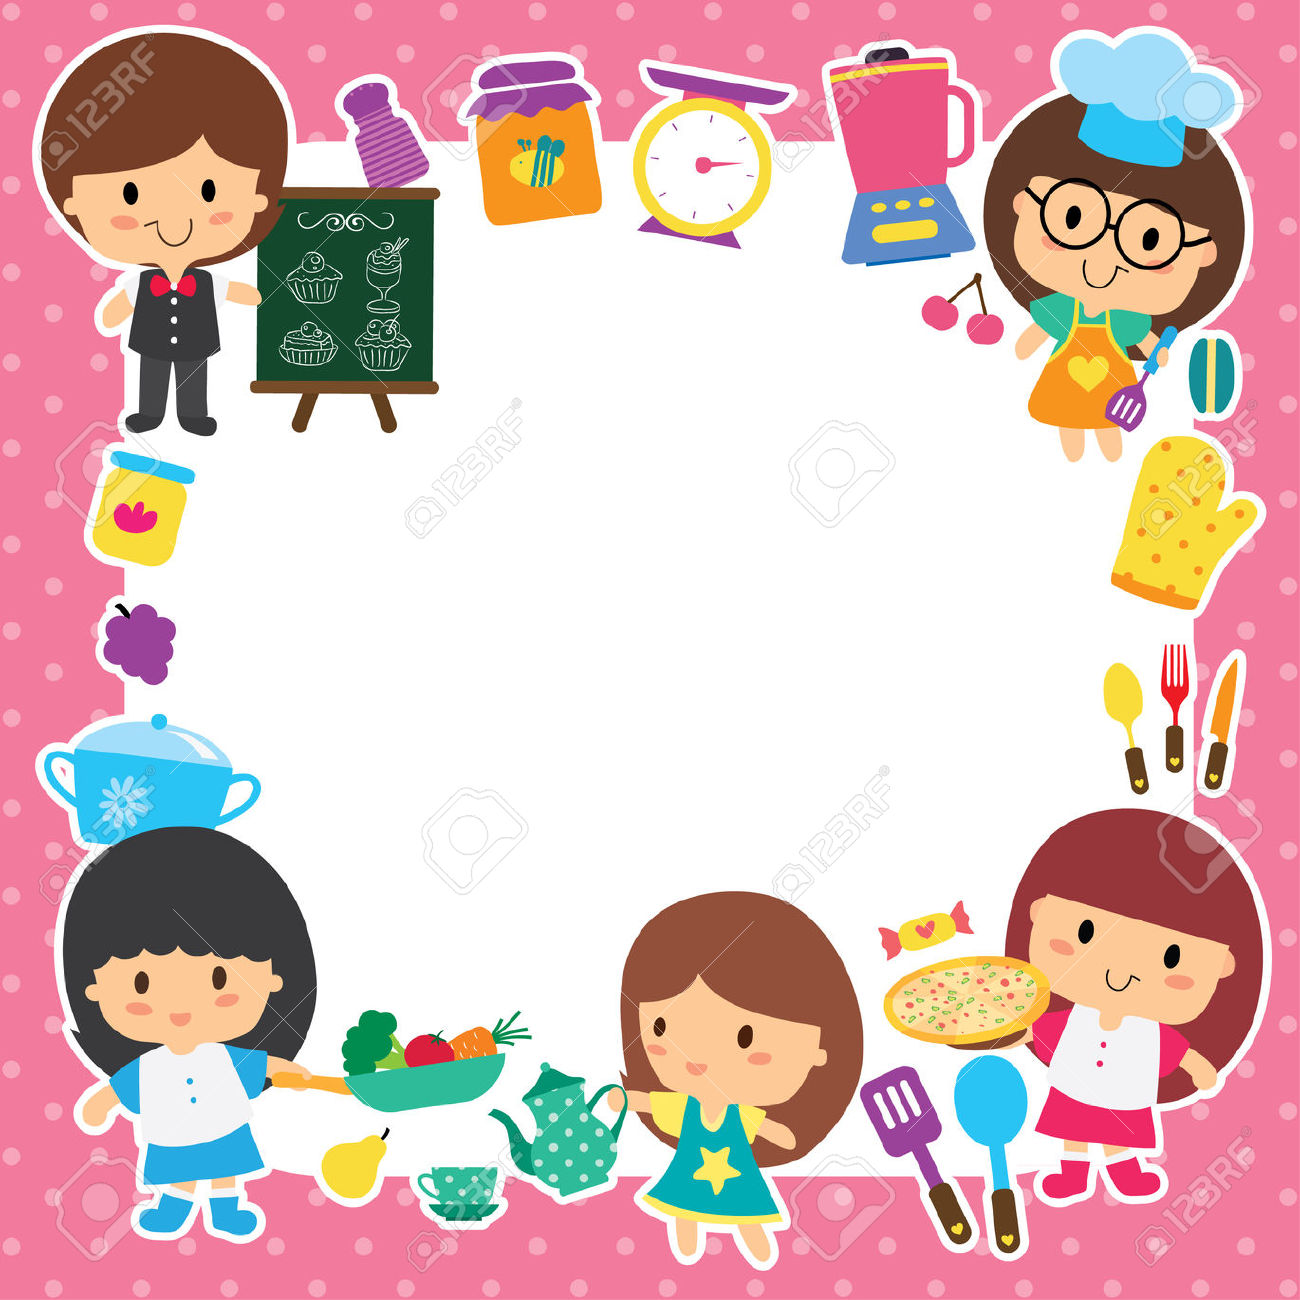 Baking clipart frame. Cooking borders and frames